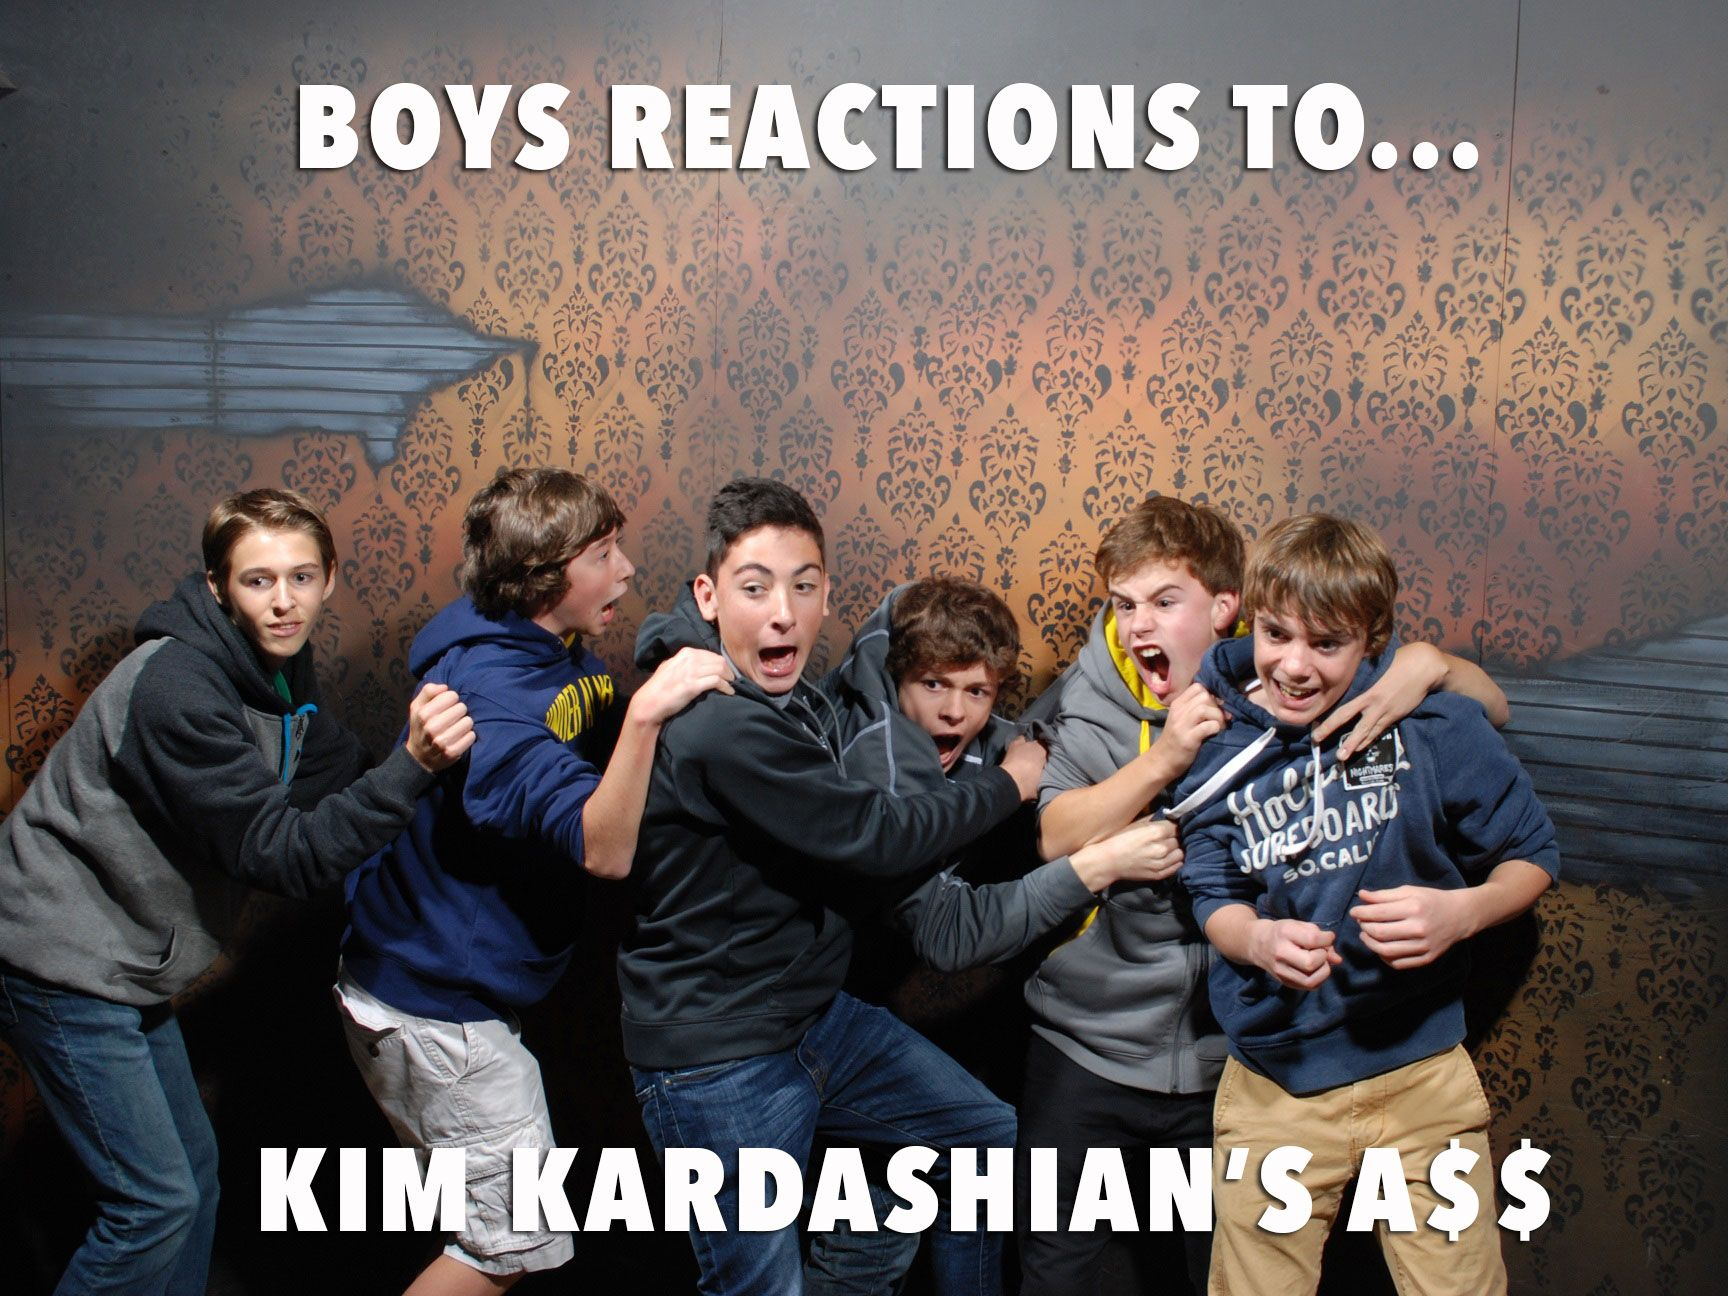 50 hilariously ridiculous haunted house reactions - A Teenage Boy S Dream Http Www Nightmaresfearfactory Com Pics Fear Factoryhaunted Housesfactorieskim